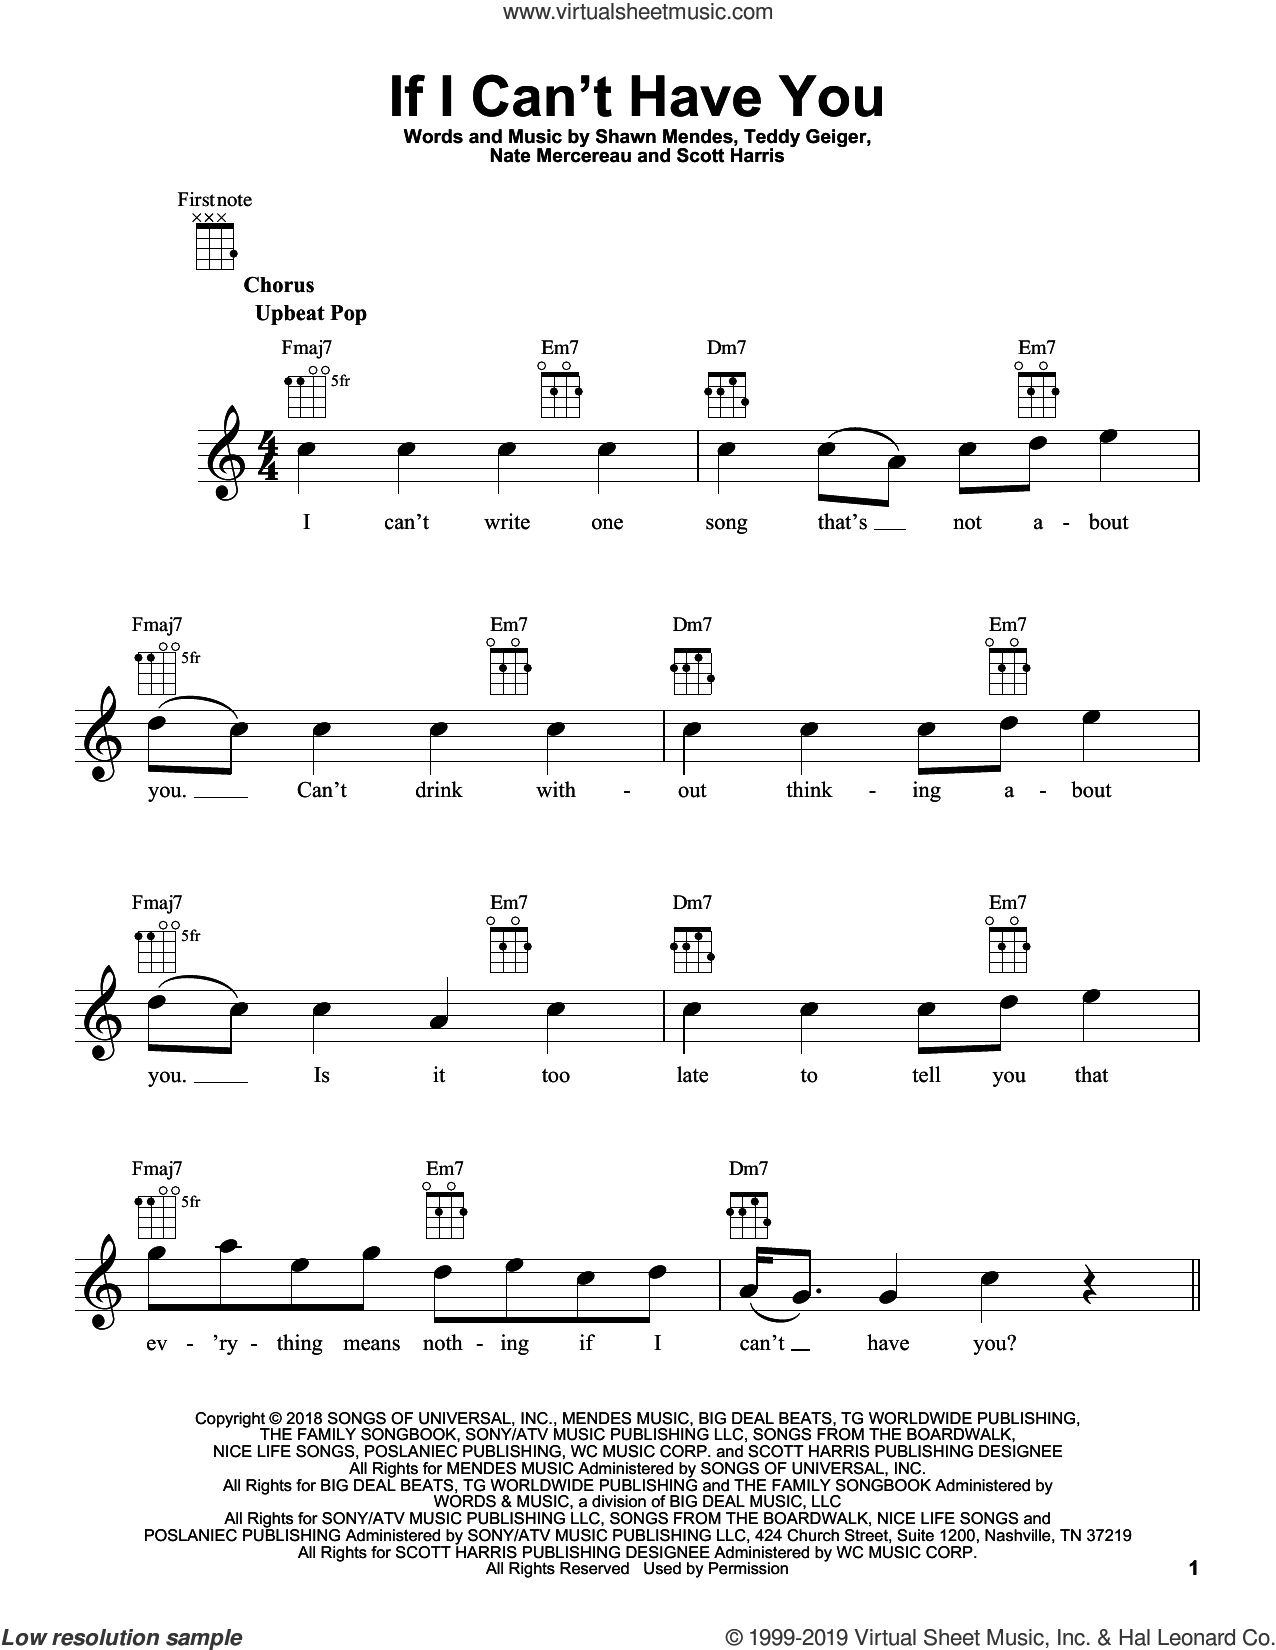 If I Can't Have You sheet music for ukulele by Shawn Mendes, Nate Mercereau, Scott Harris and Teddy Geiger, intermediate skill level